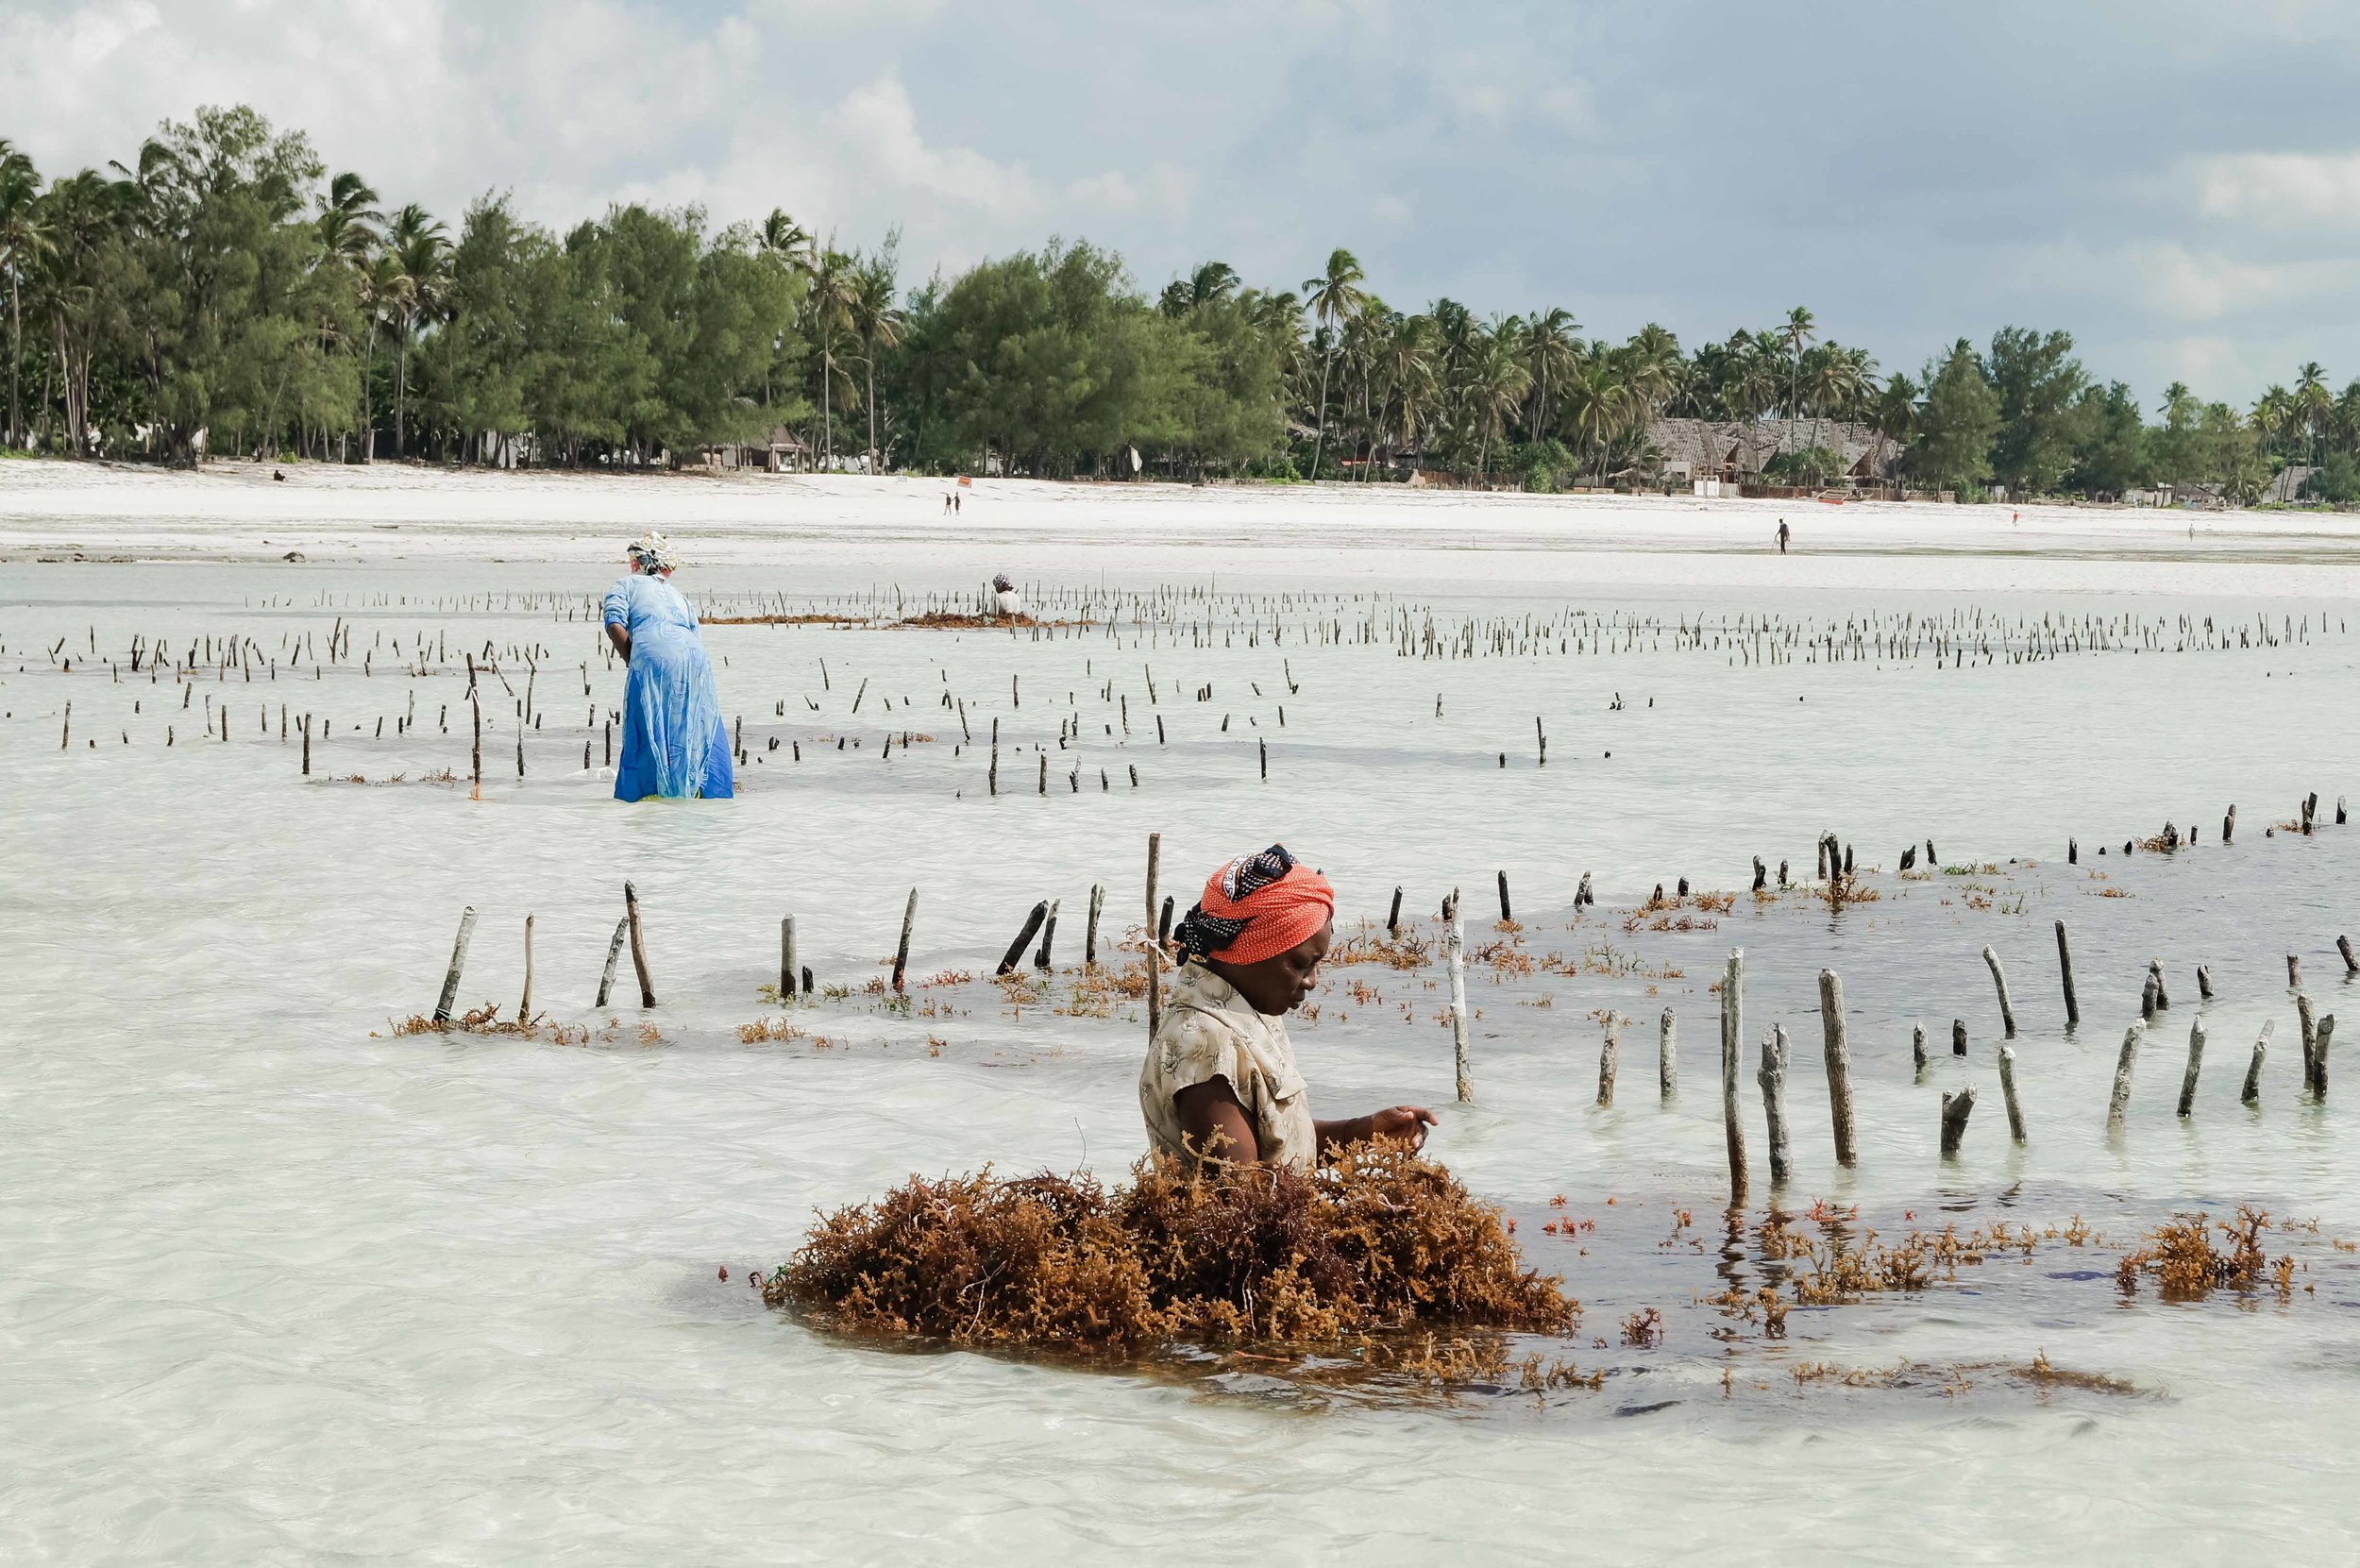 As the tide goes out it reveals a seaweed farm, the local women make their way out into the shallow waters to harvest.